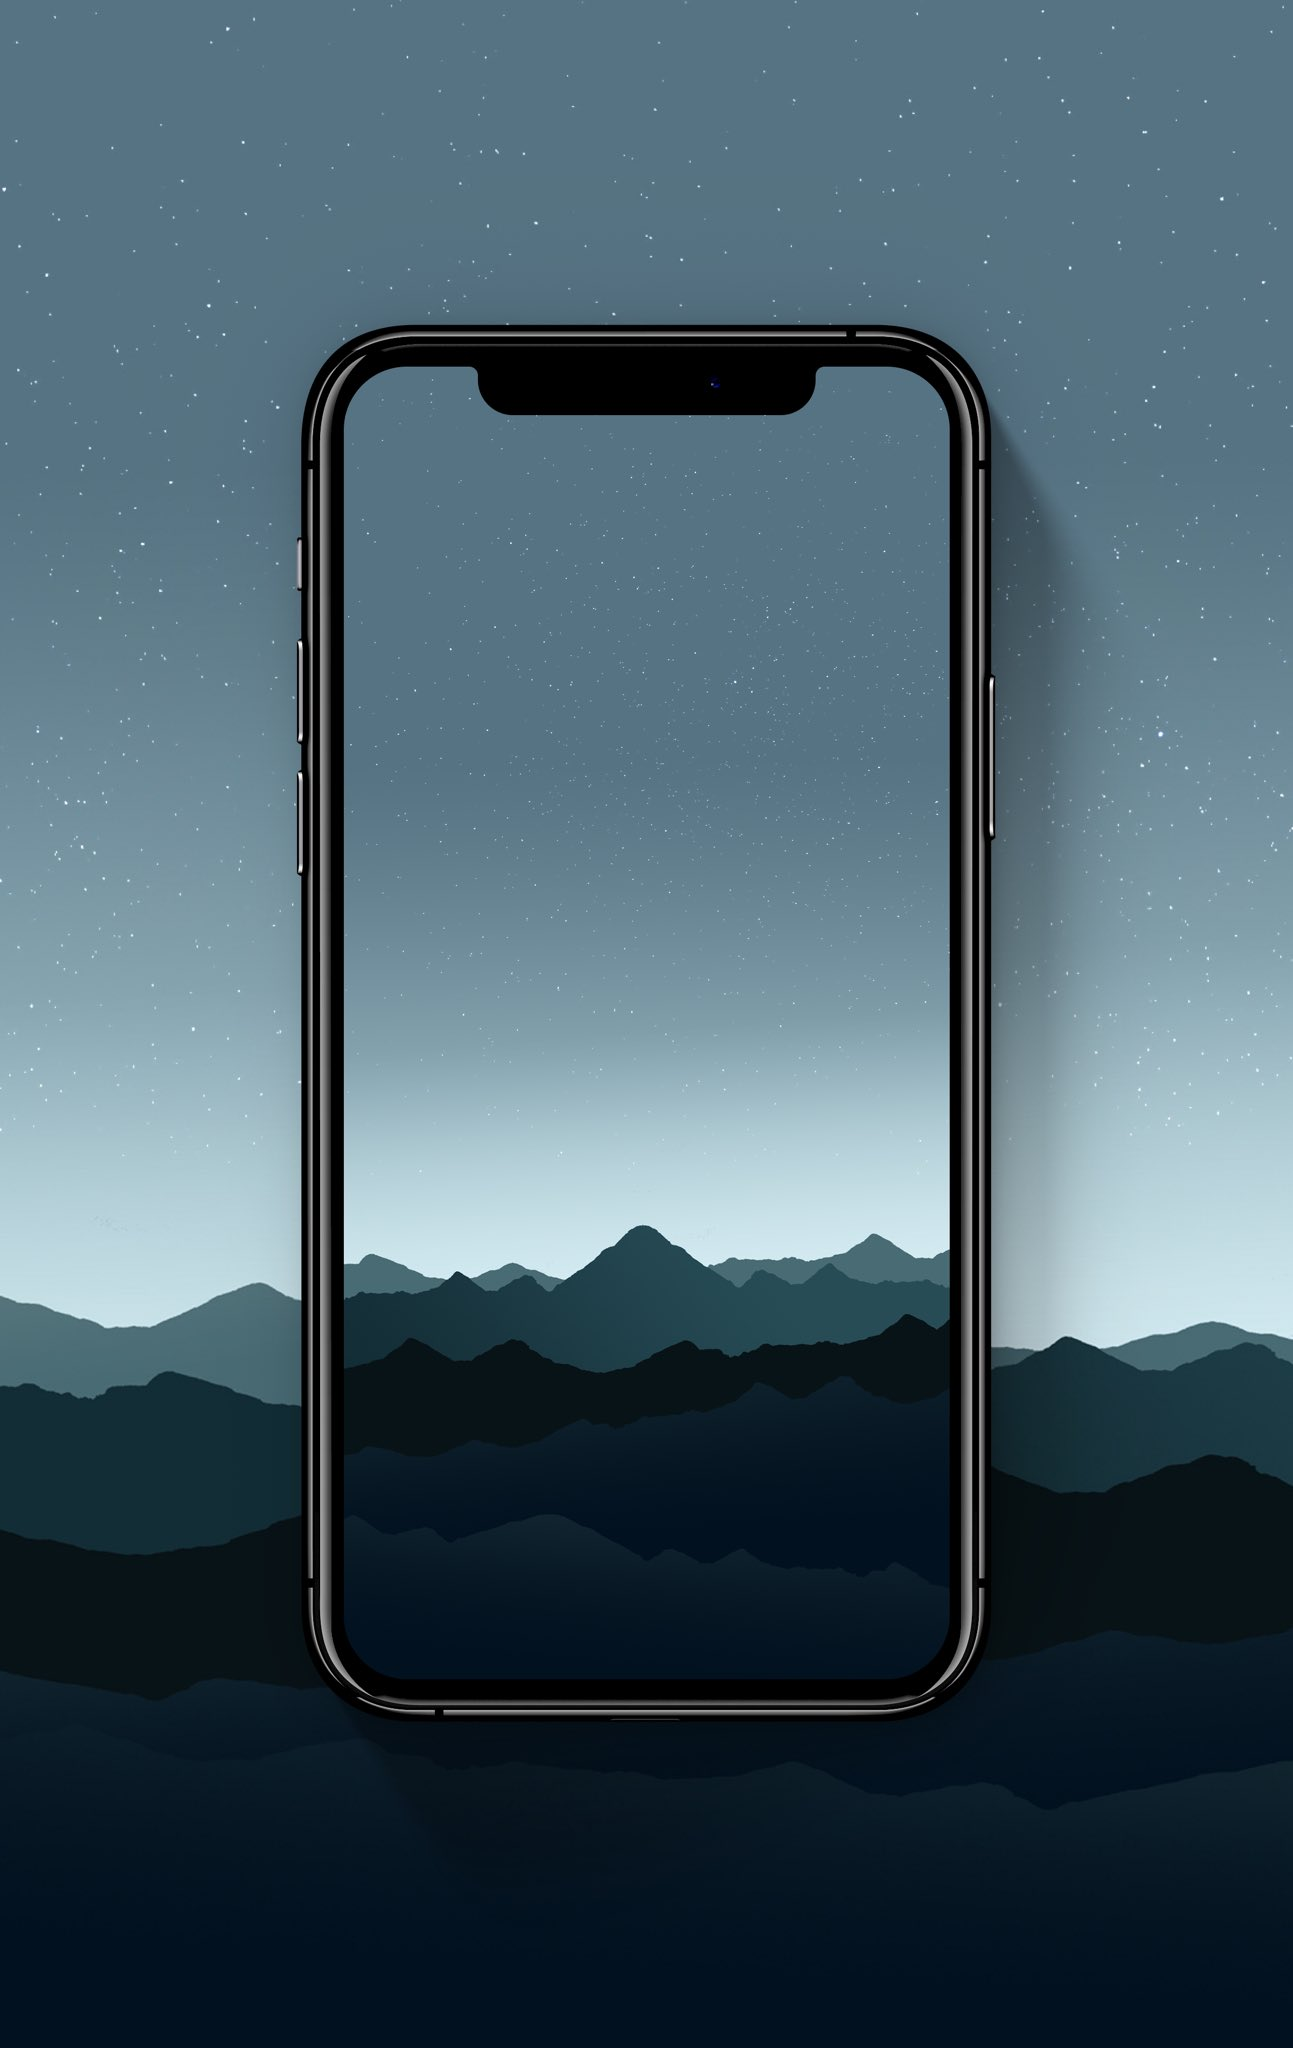 Ar7 On Twitter Wallpapers Minimal Mountains Scenery Wallpaper For Iphone11promax Iphone11pro Iphone11 Iphonexsmax Iphonexr Iphonexs Iphonex All Other Iphone Ipad Desktop Download